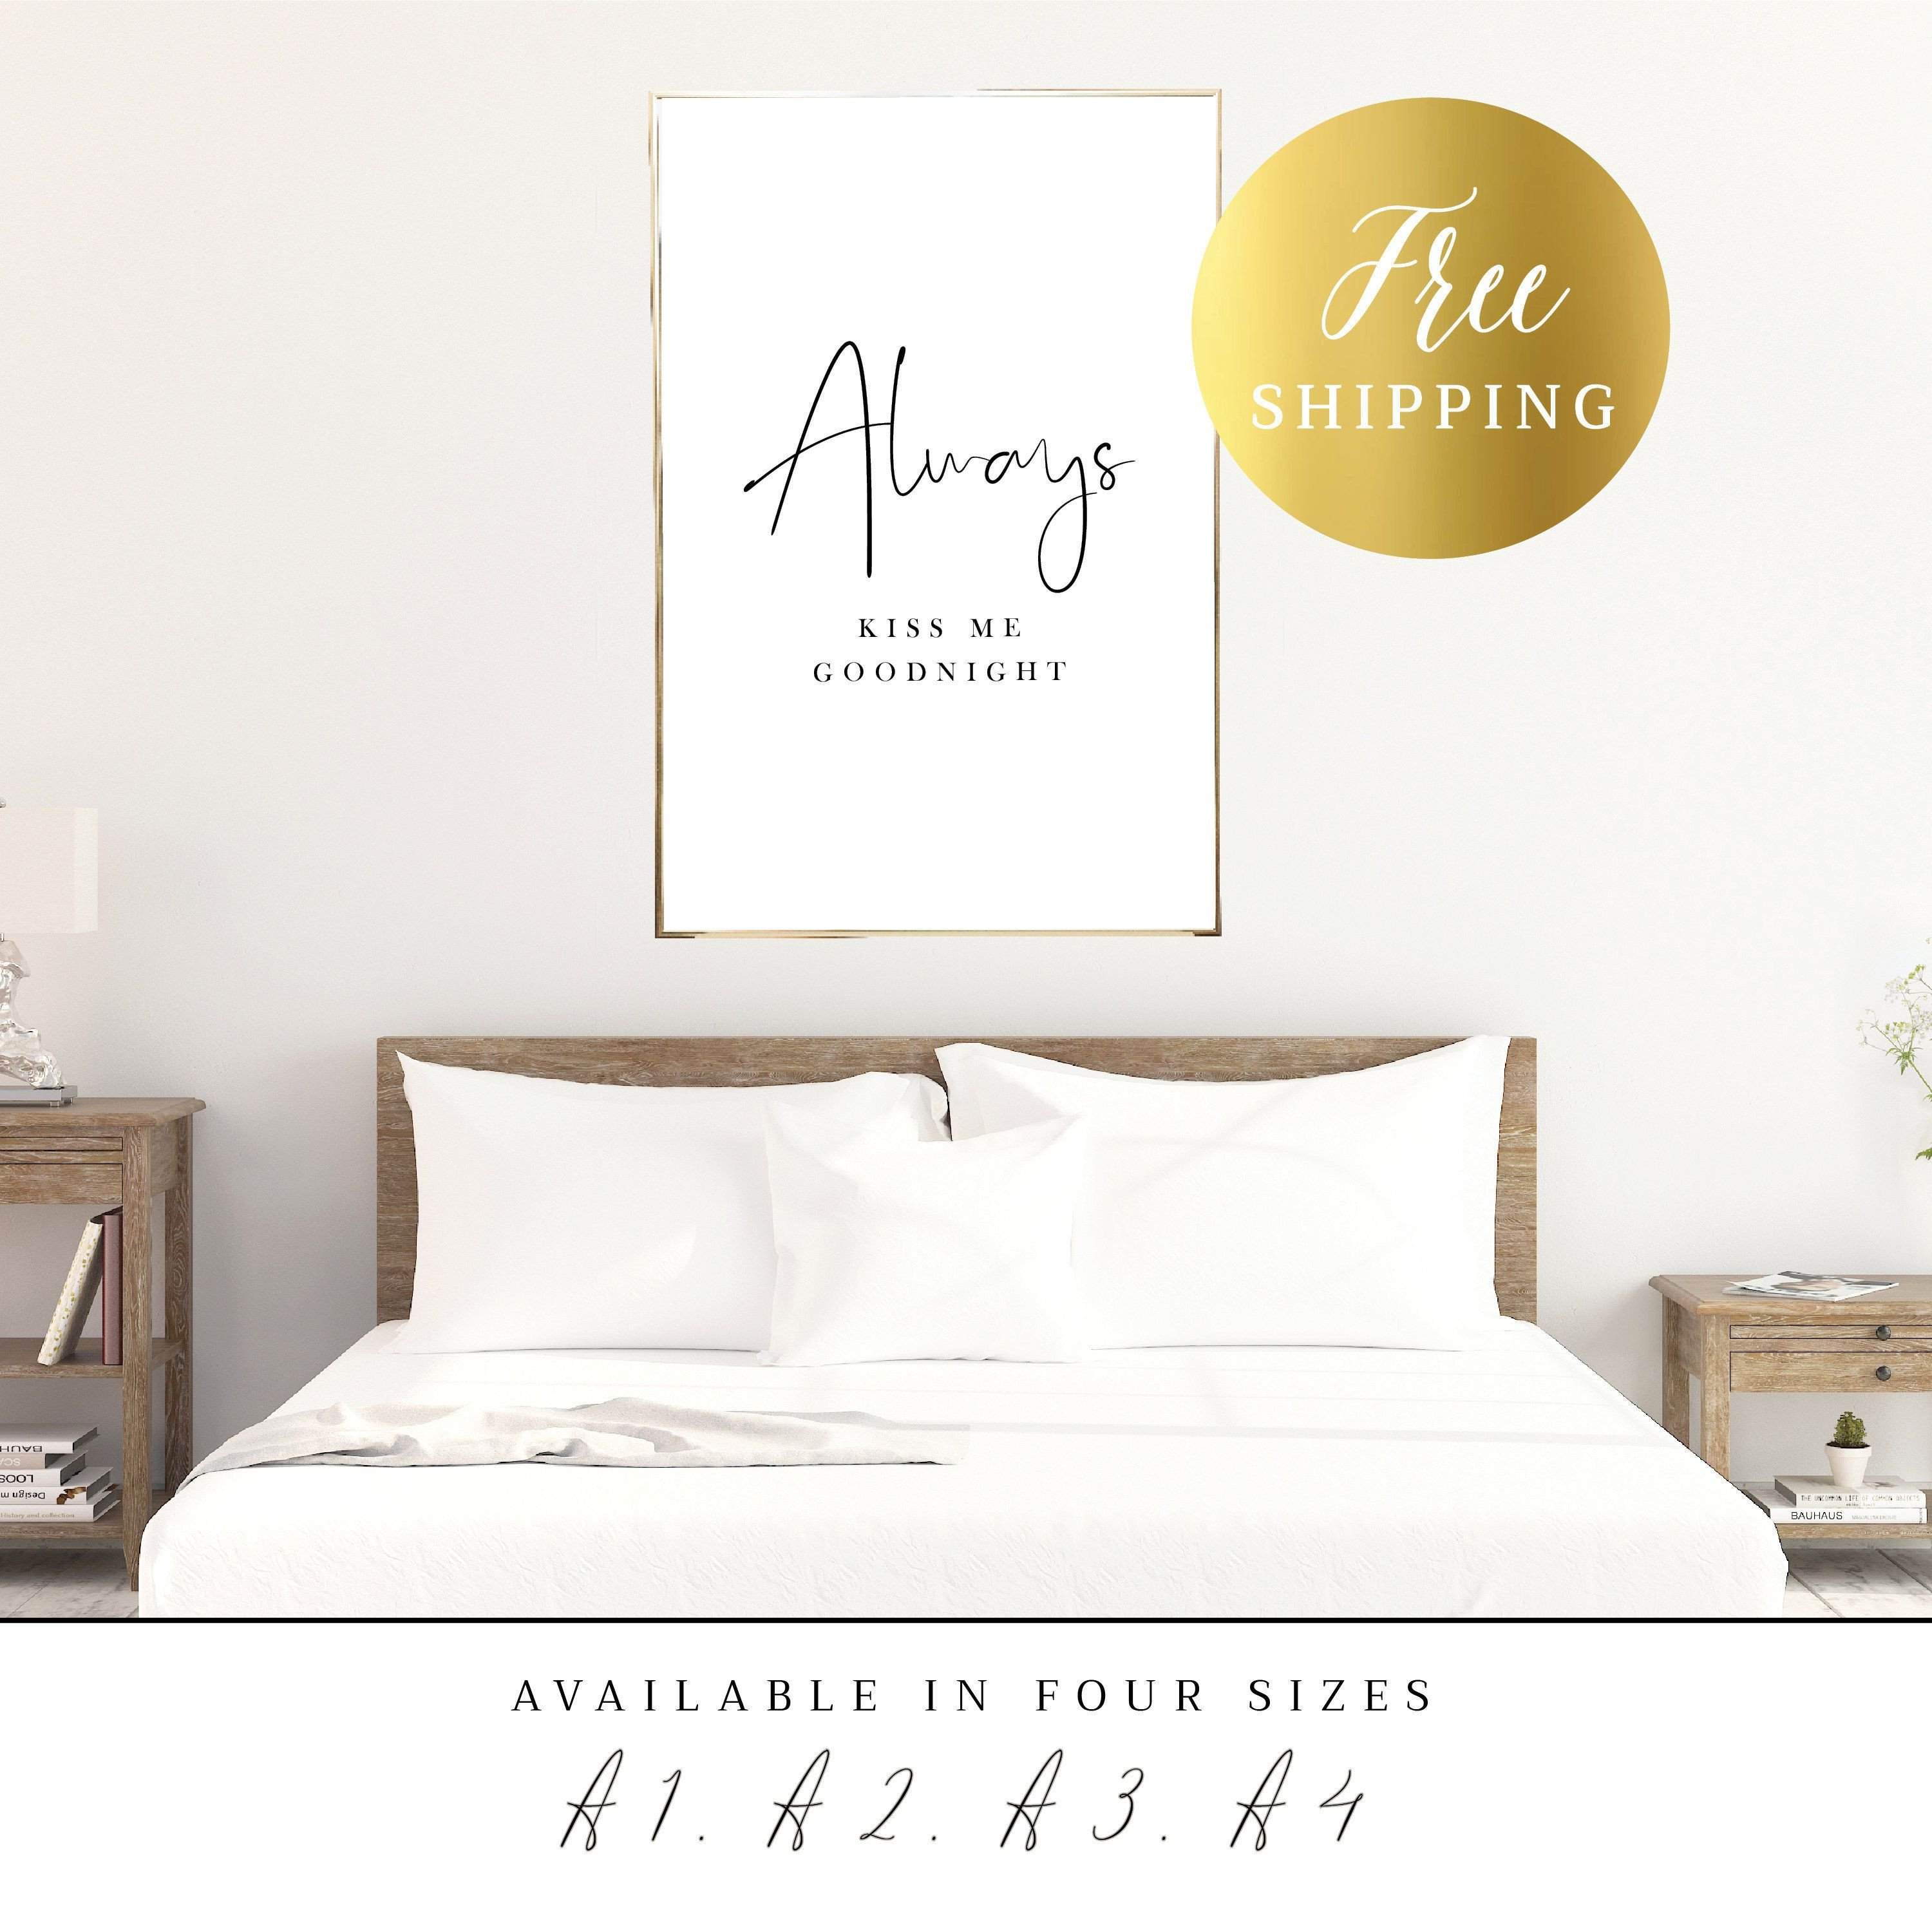 Artwork for Bedroom Wall Luxury Printed Poster Always Kiss Me Goodnight